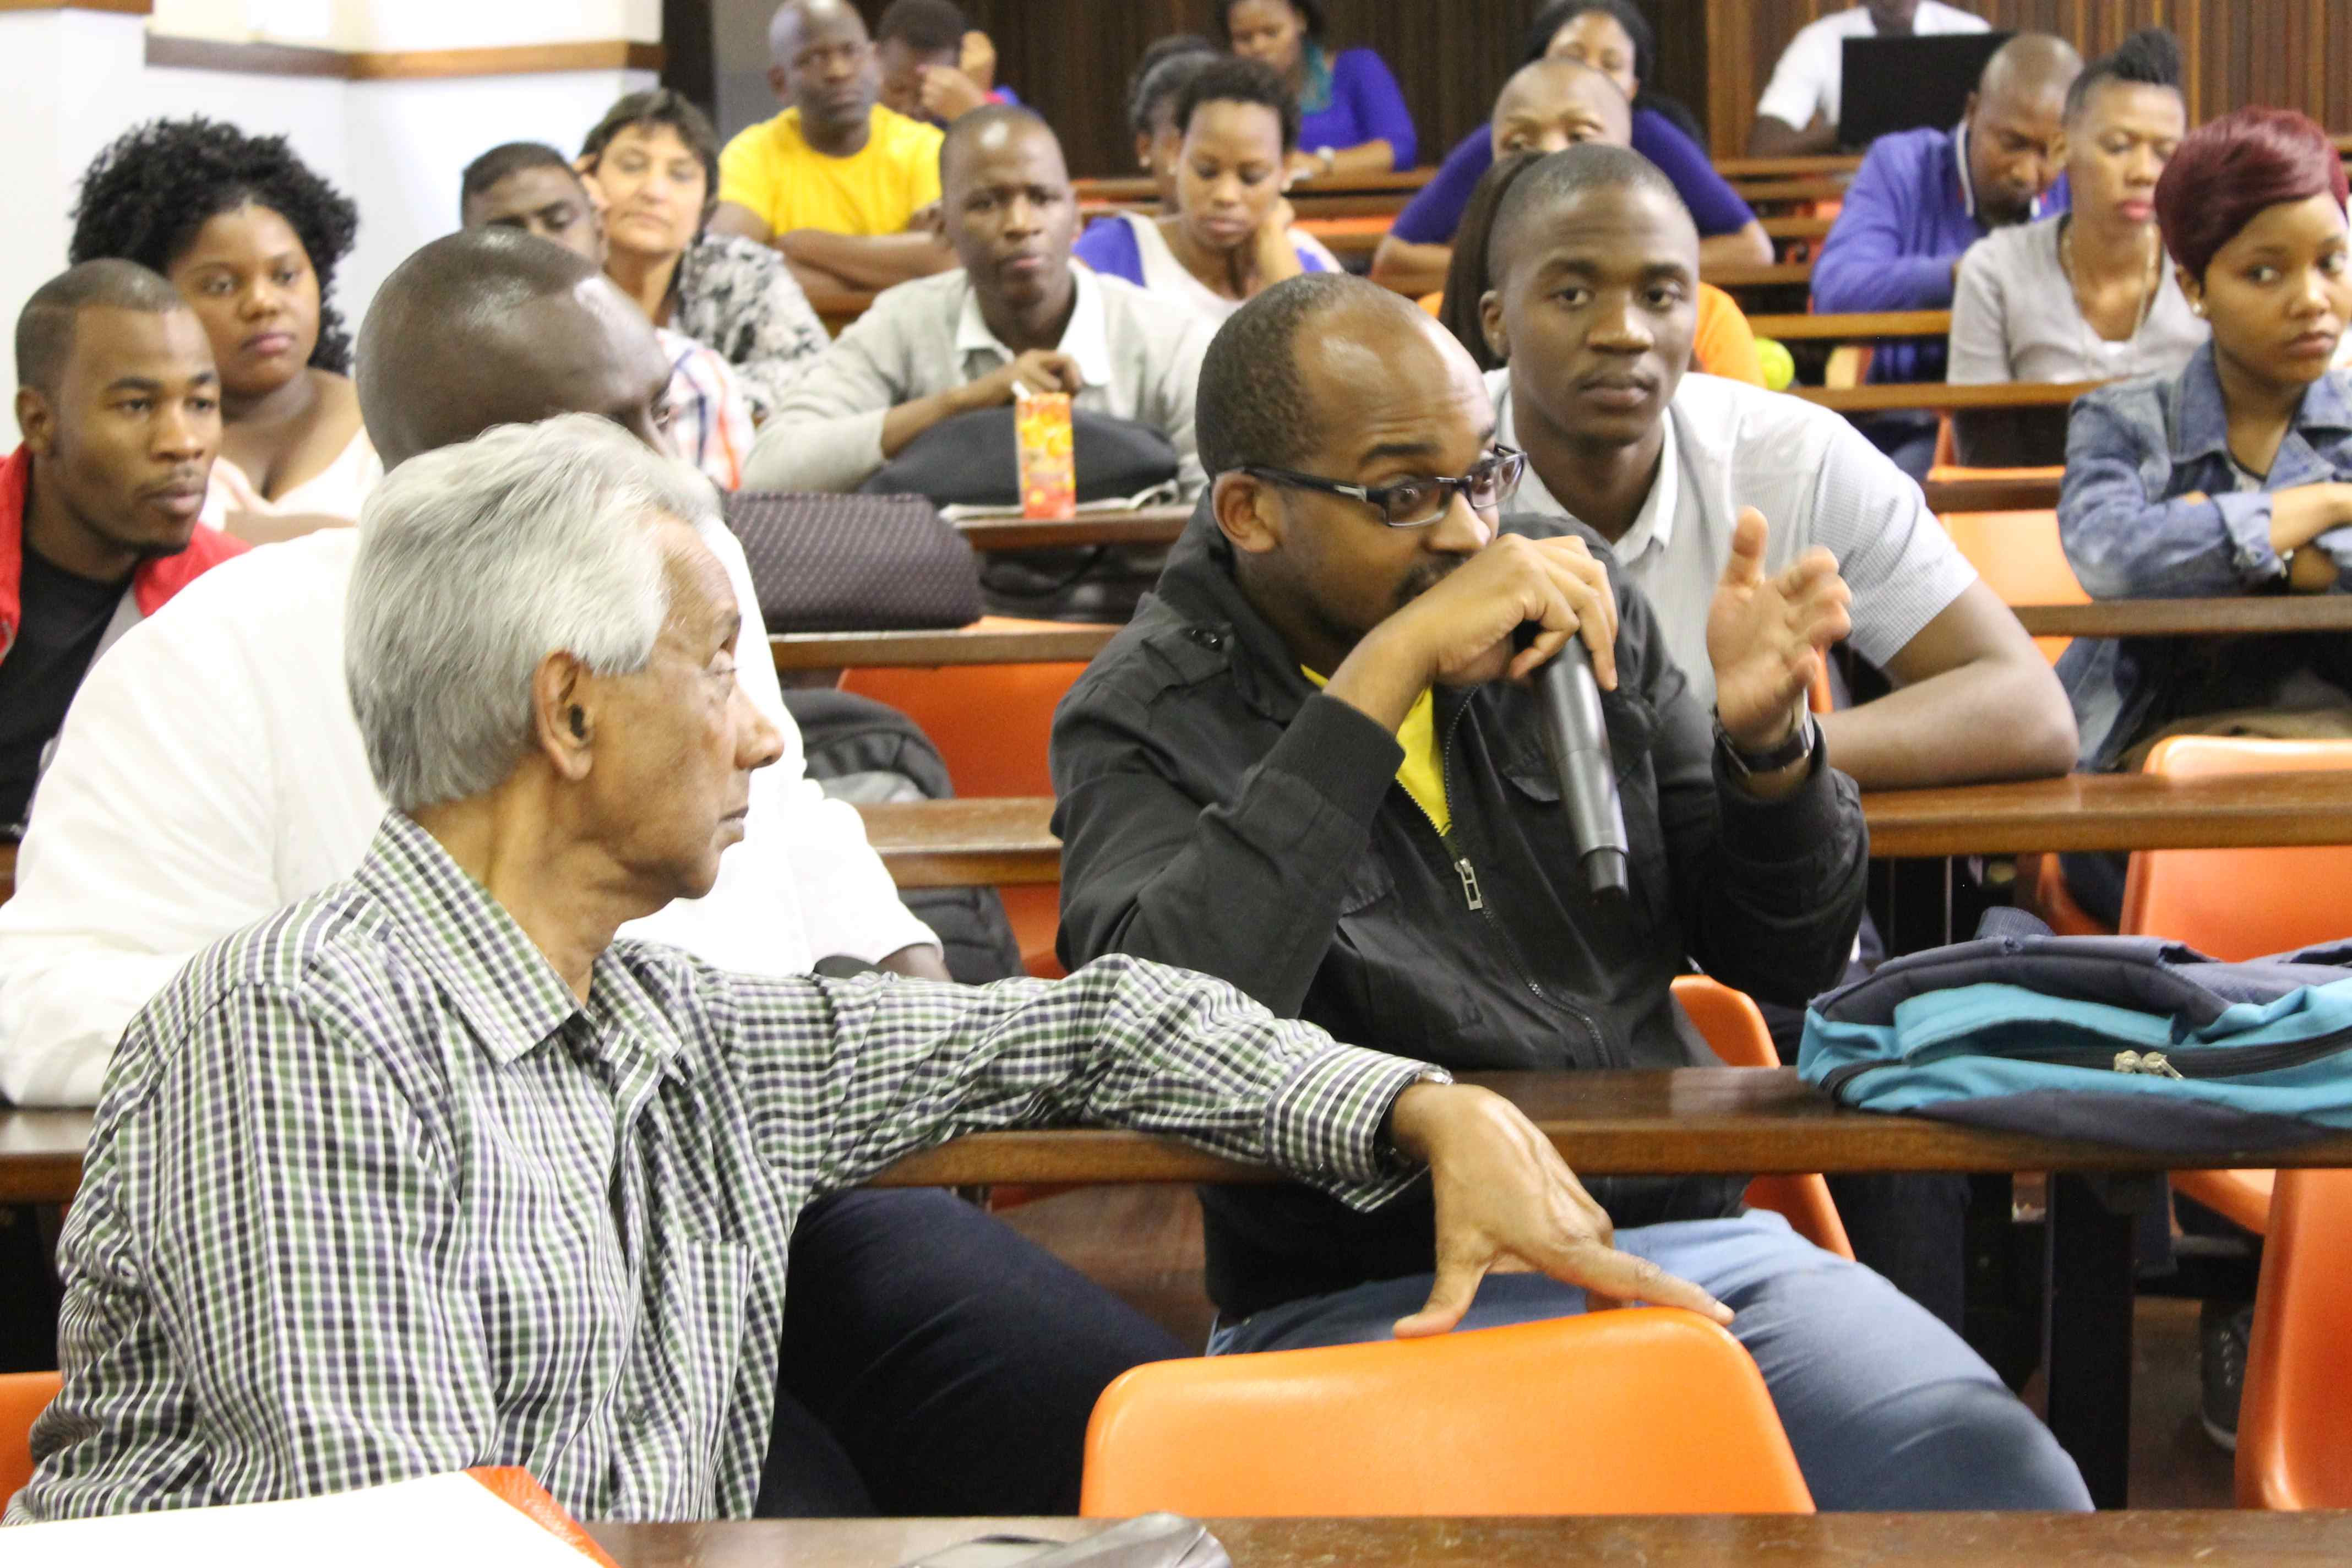 Siyondla Sithole speaks on what he termed 'our broken society'